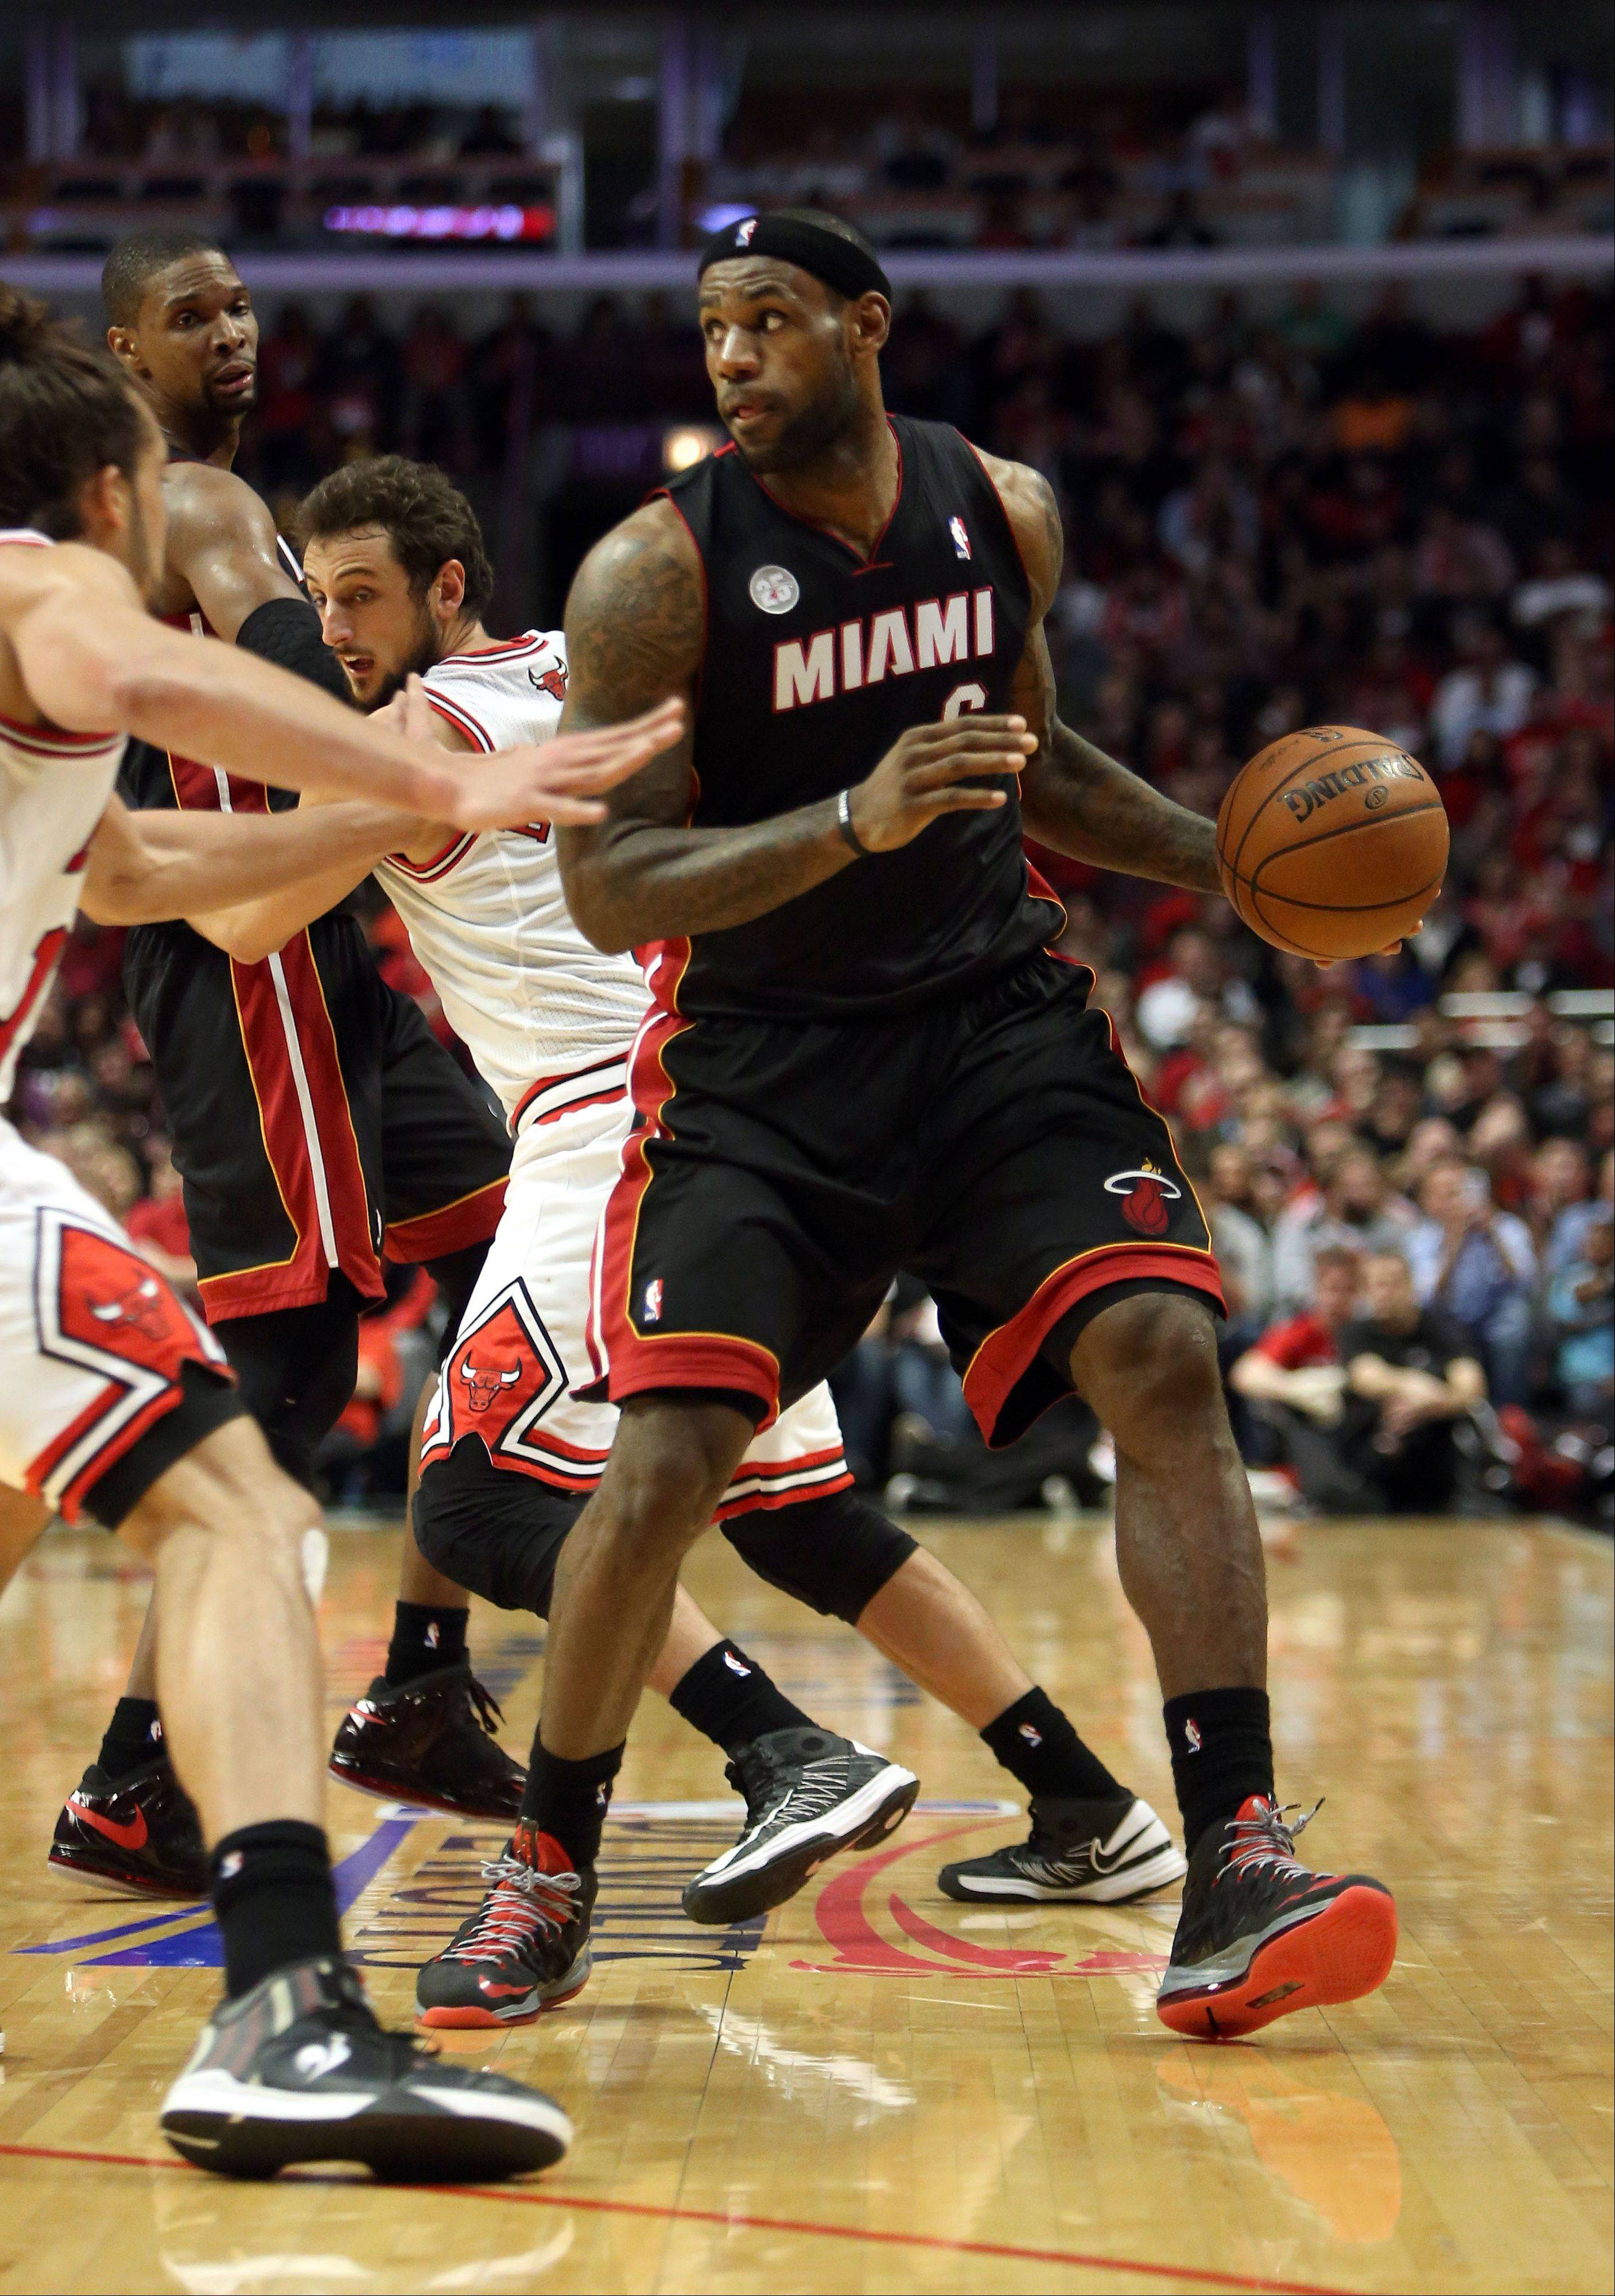 If the Bulls have anything to say about it, LeBron James and the Miami Heat won�t be able to put it on cruise control in Game 5 on Wednesday night.